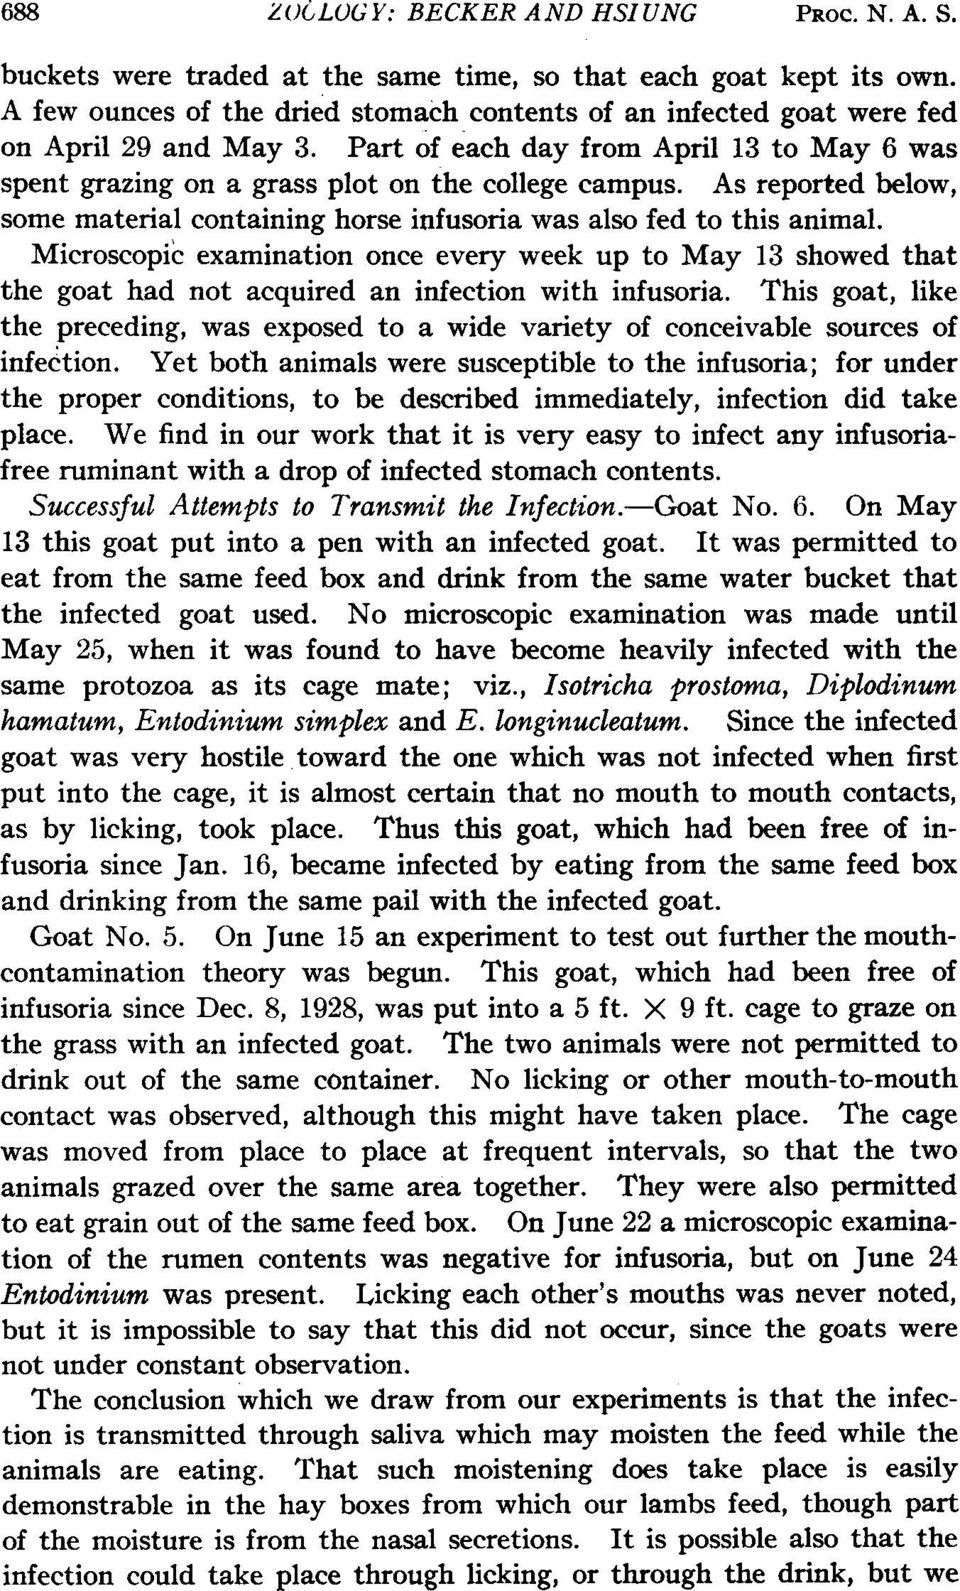 As reported below, some material containing horse infusoria was also fed to this animal.